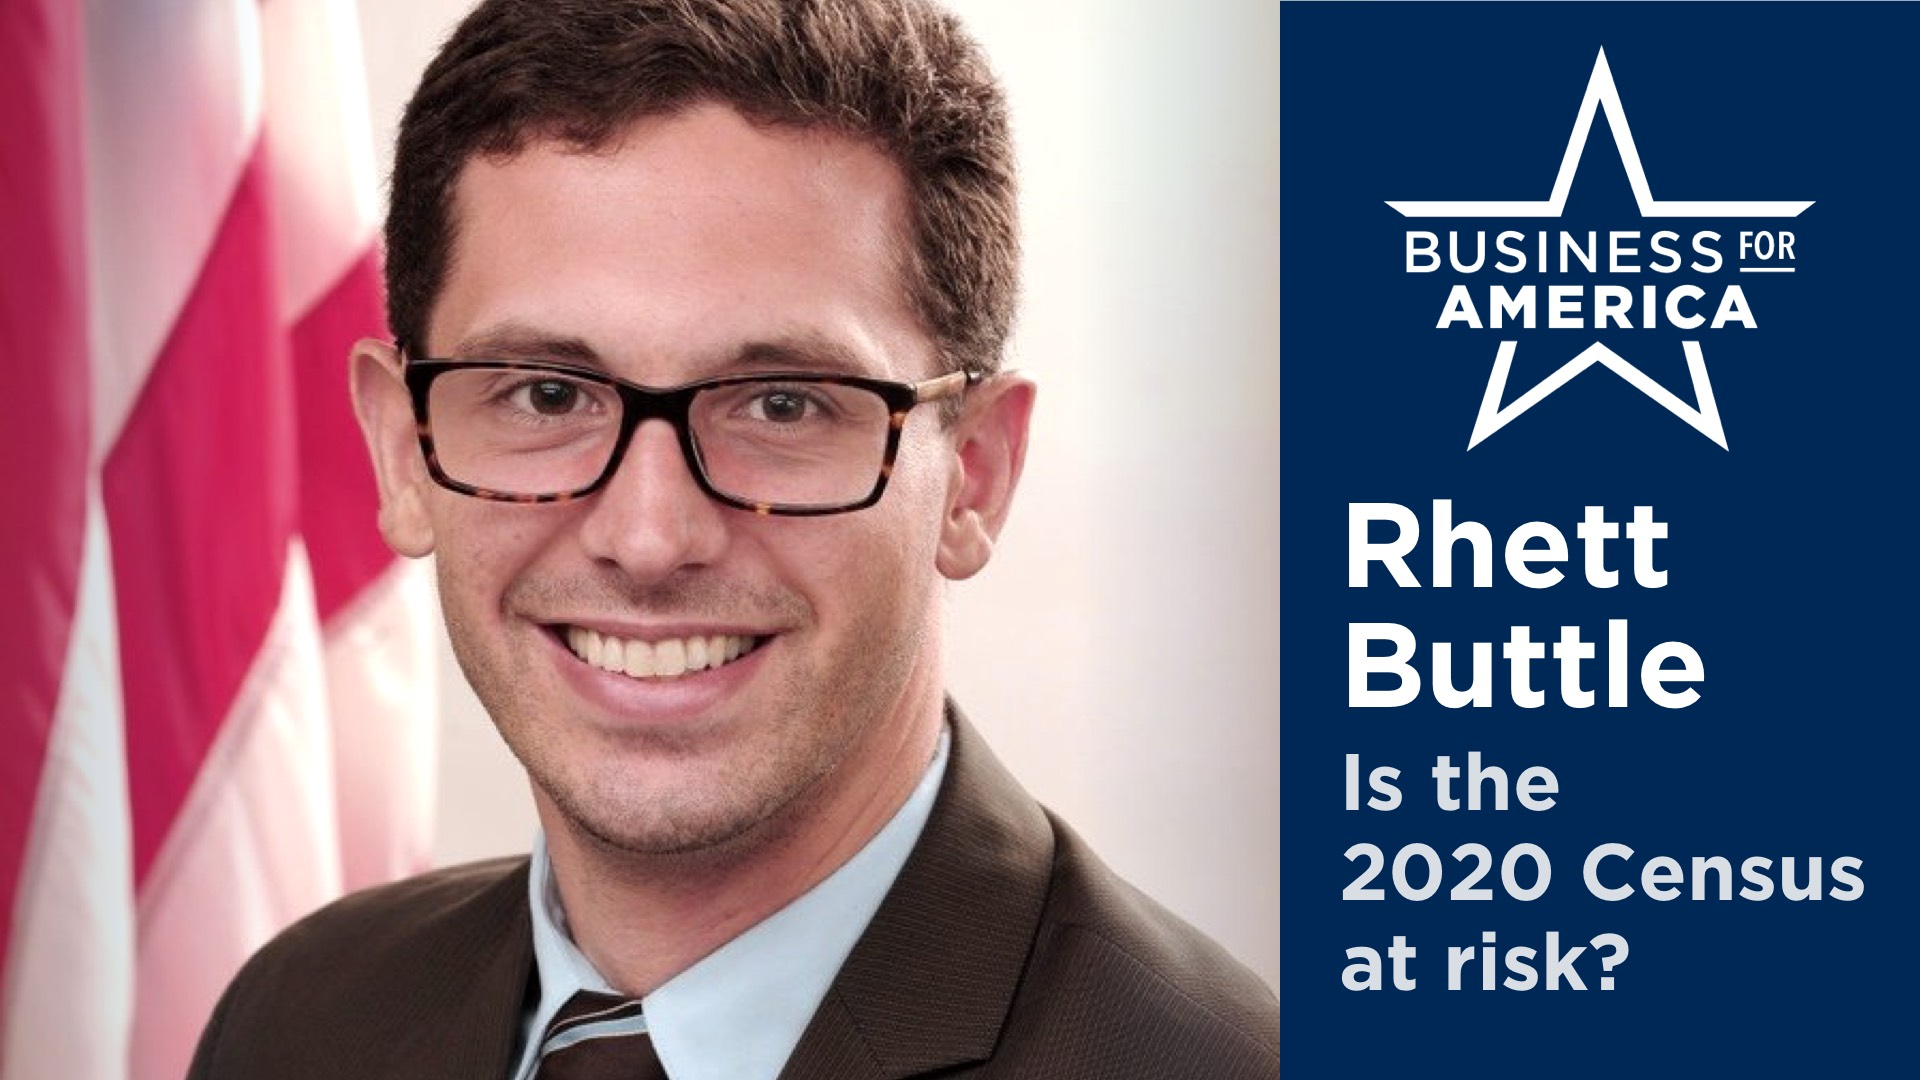 The Aspen Institute's Rhett Buttle • The 2020 US Census and U.S. Business